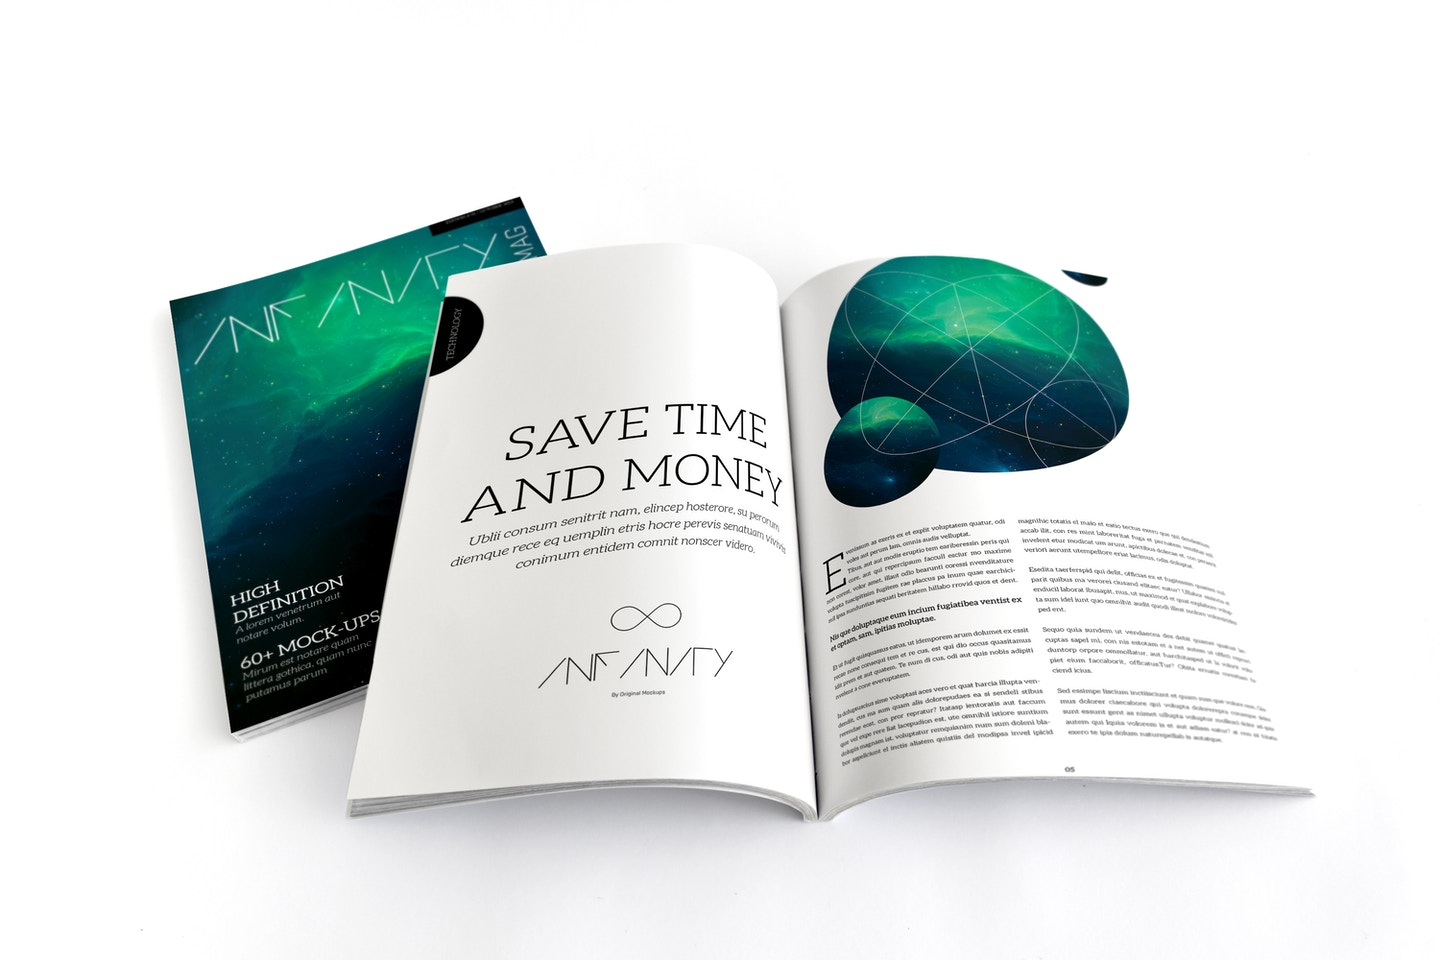 A4 Magazine Mockup for Spread Page & Cover 01